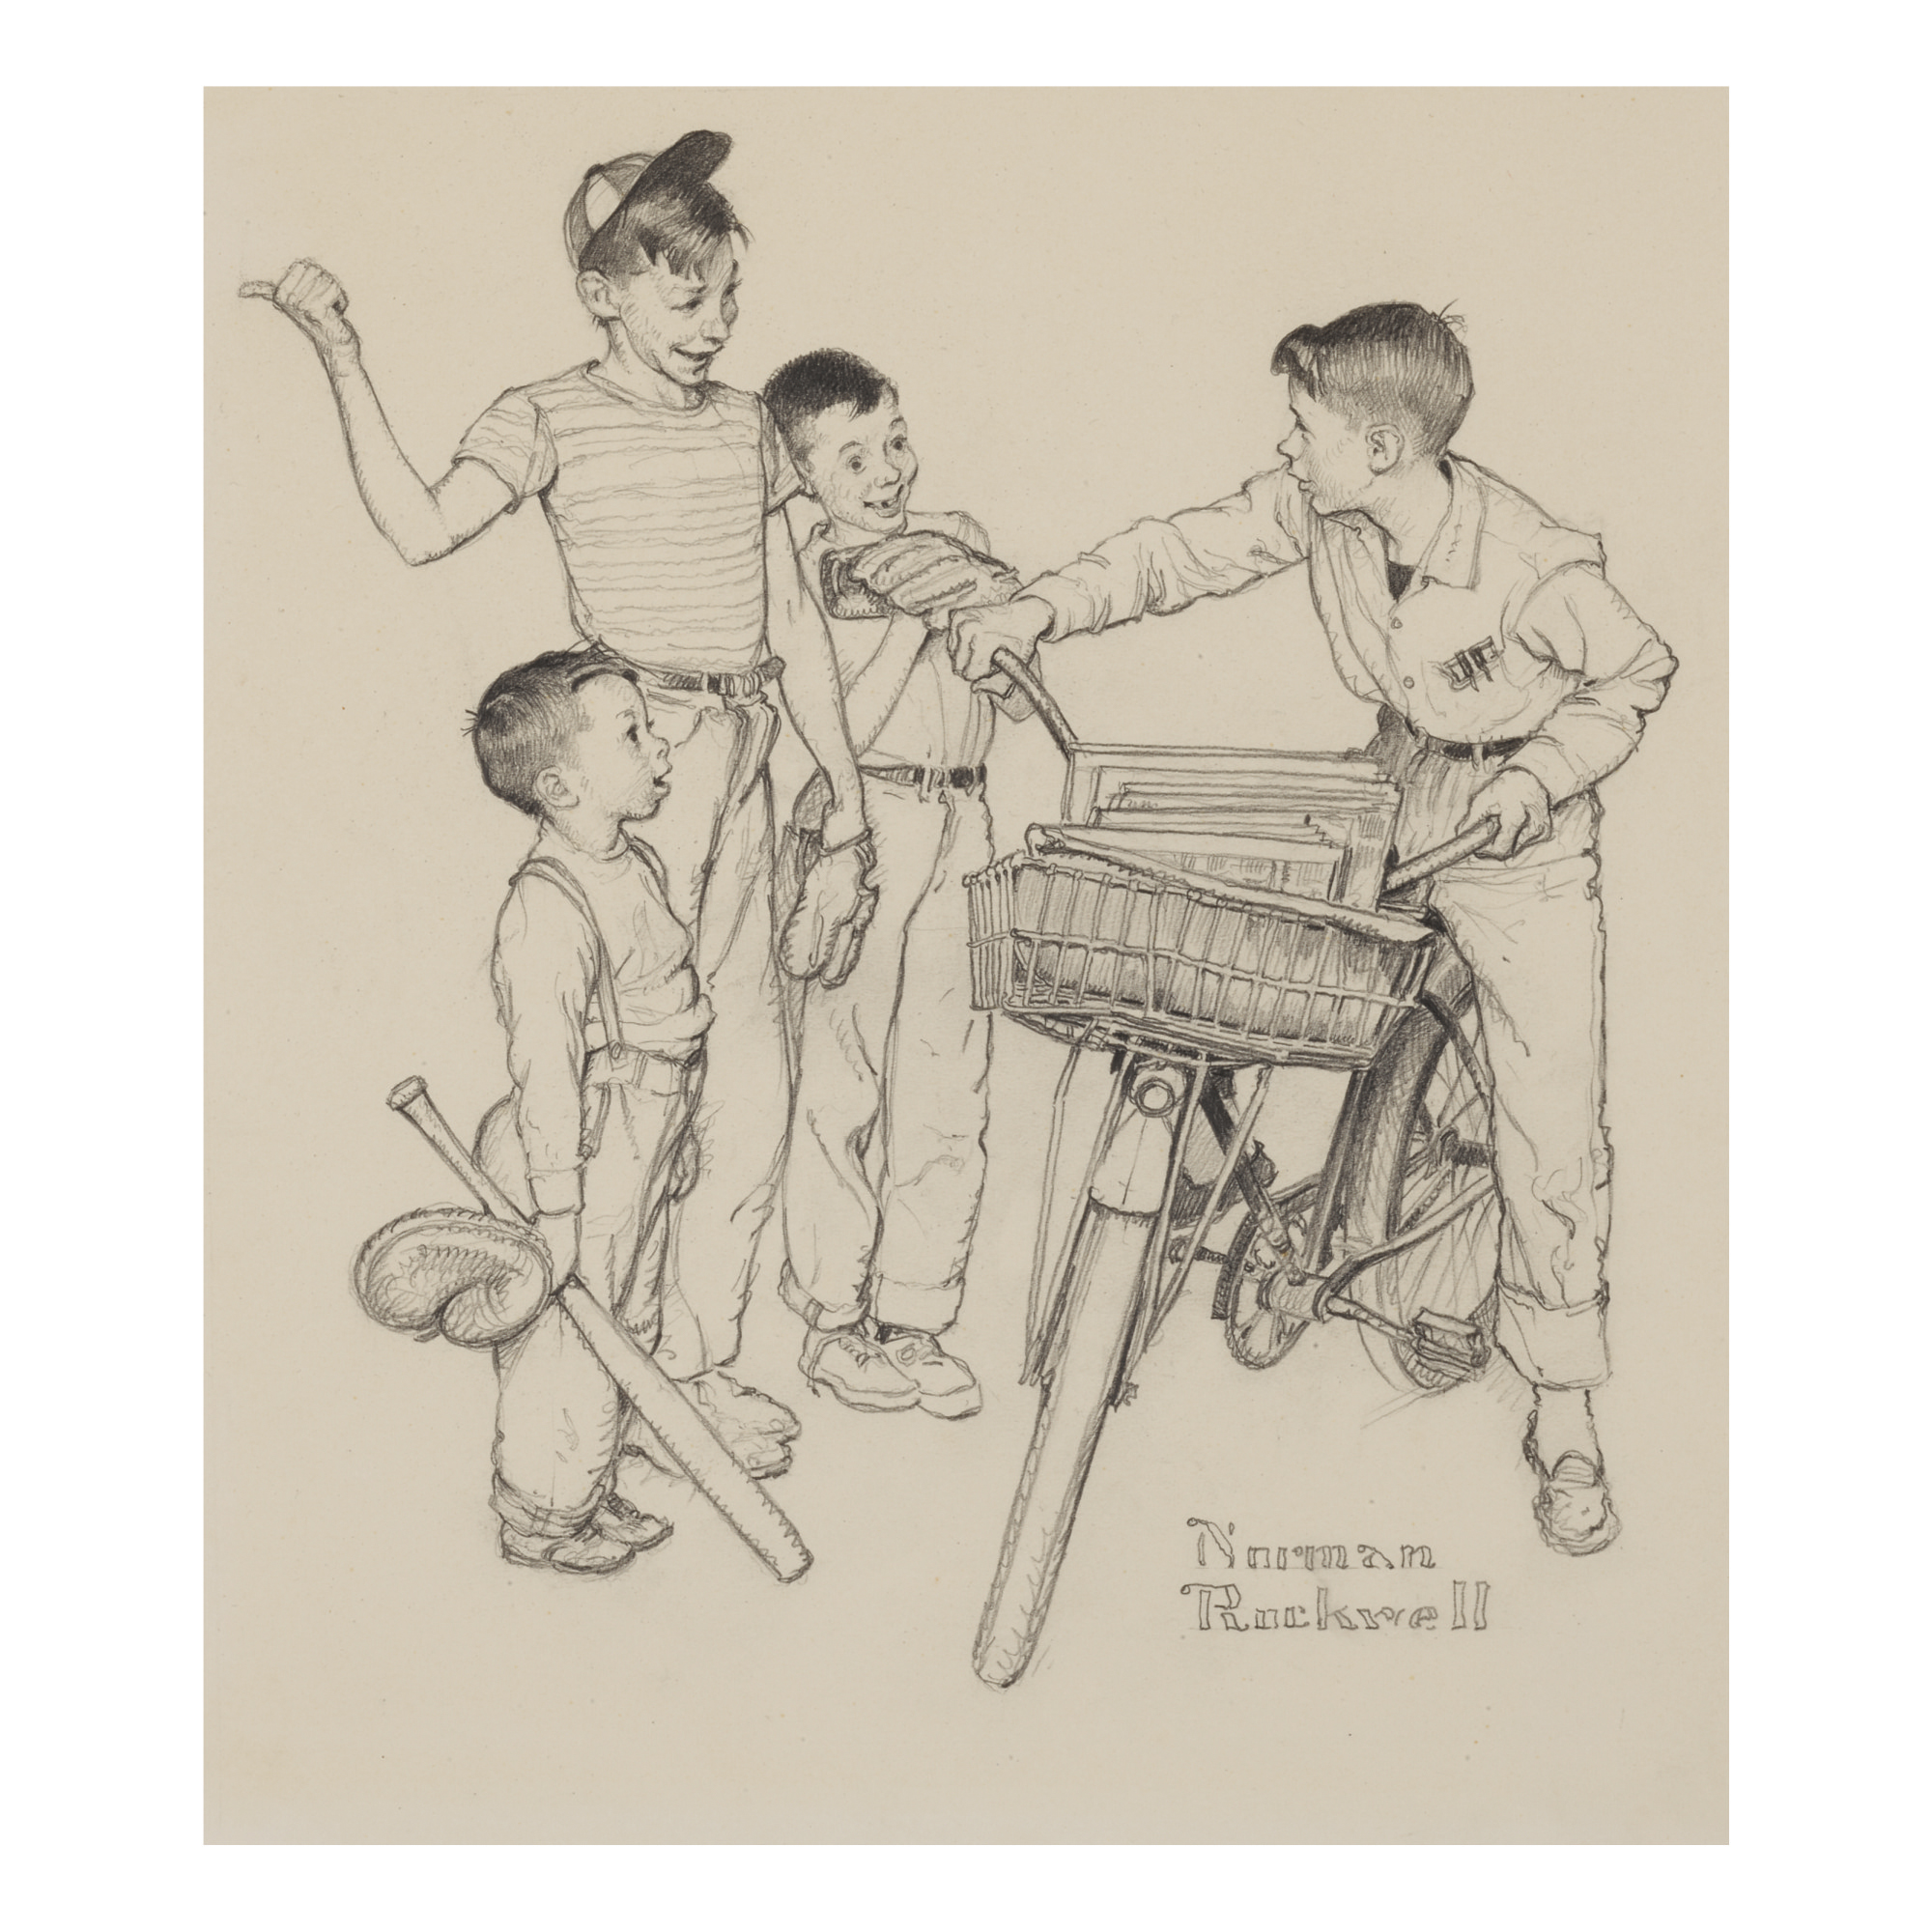 NORMAN ROCKWELL   WHAT DO YOU TEACH A BOY OF TWELVE?